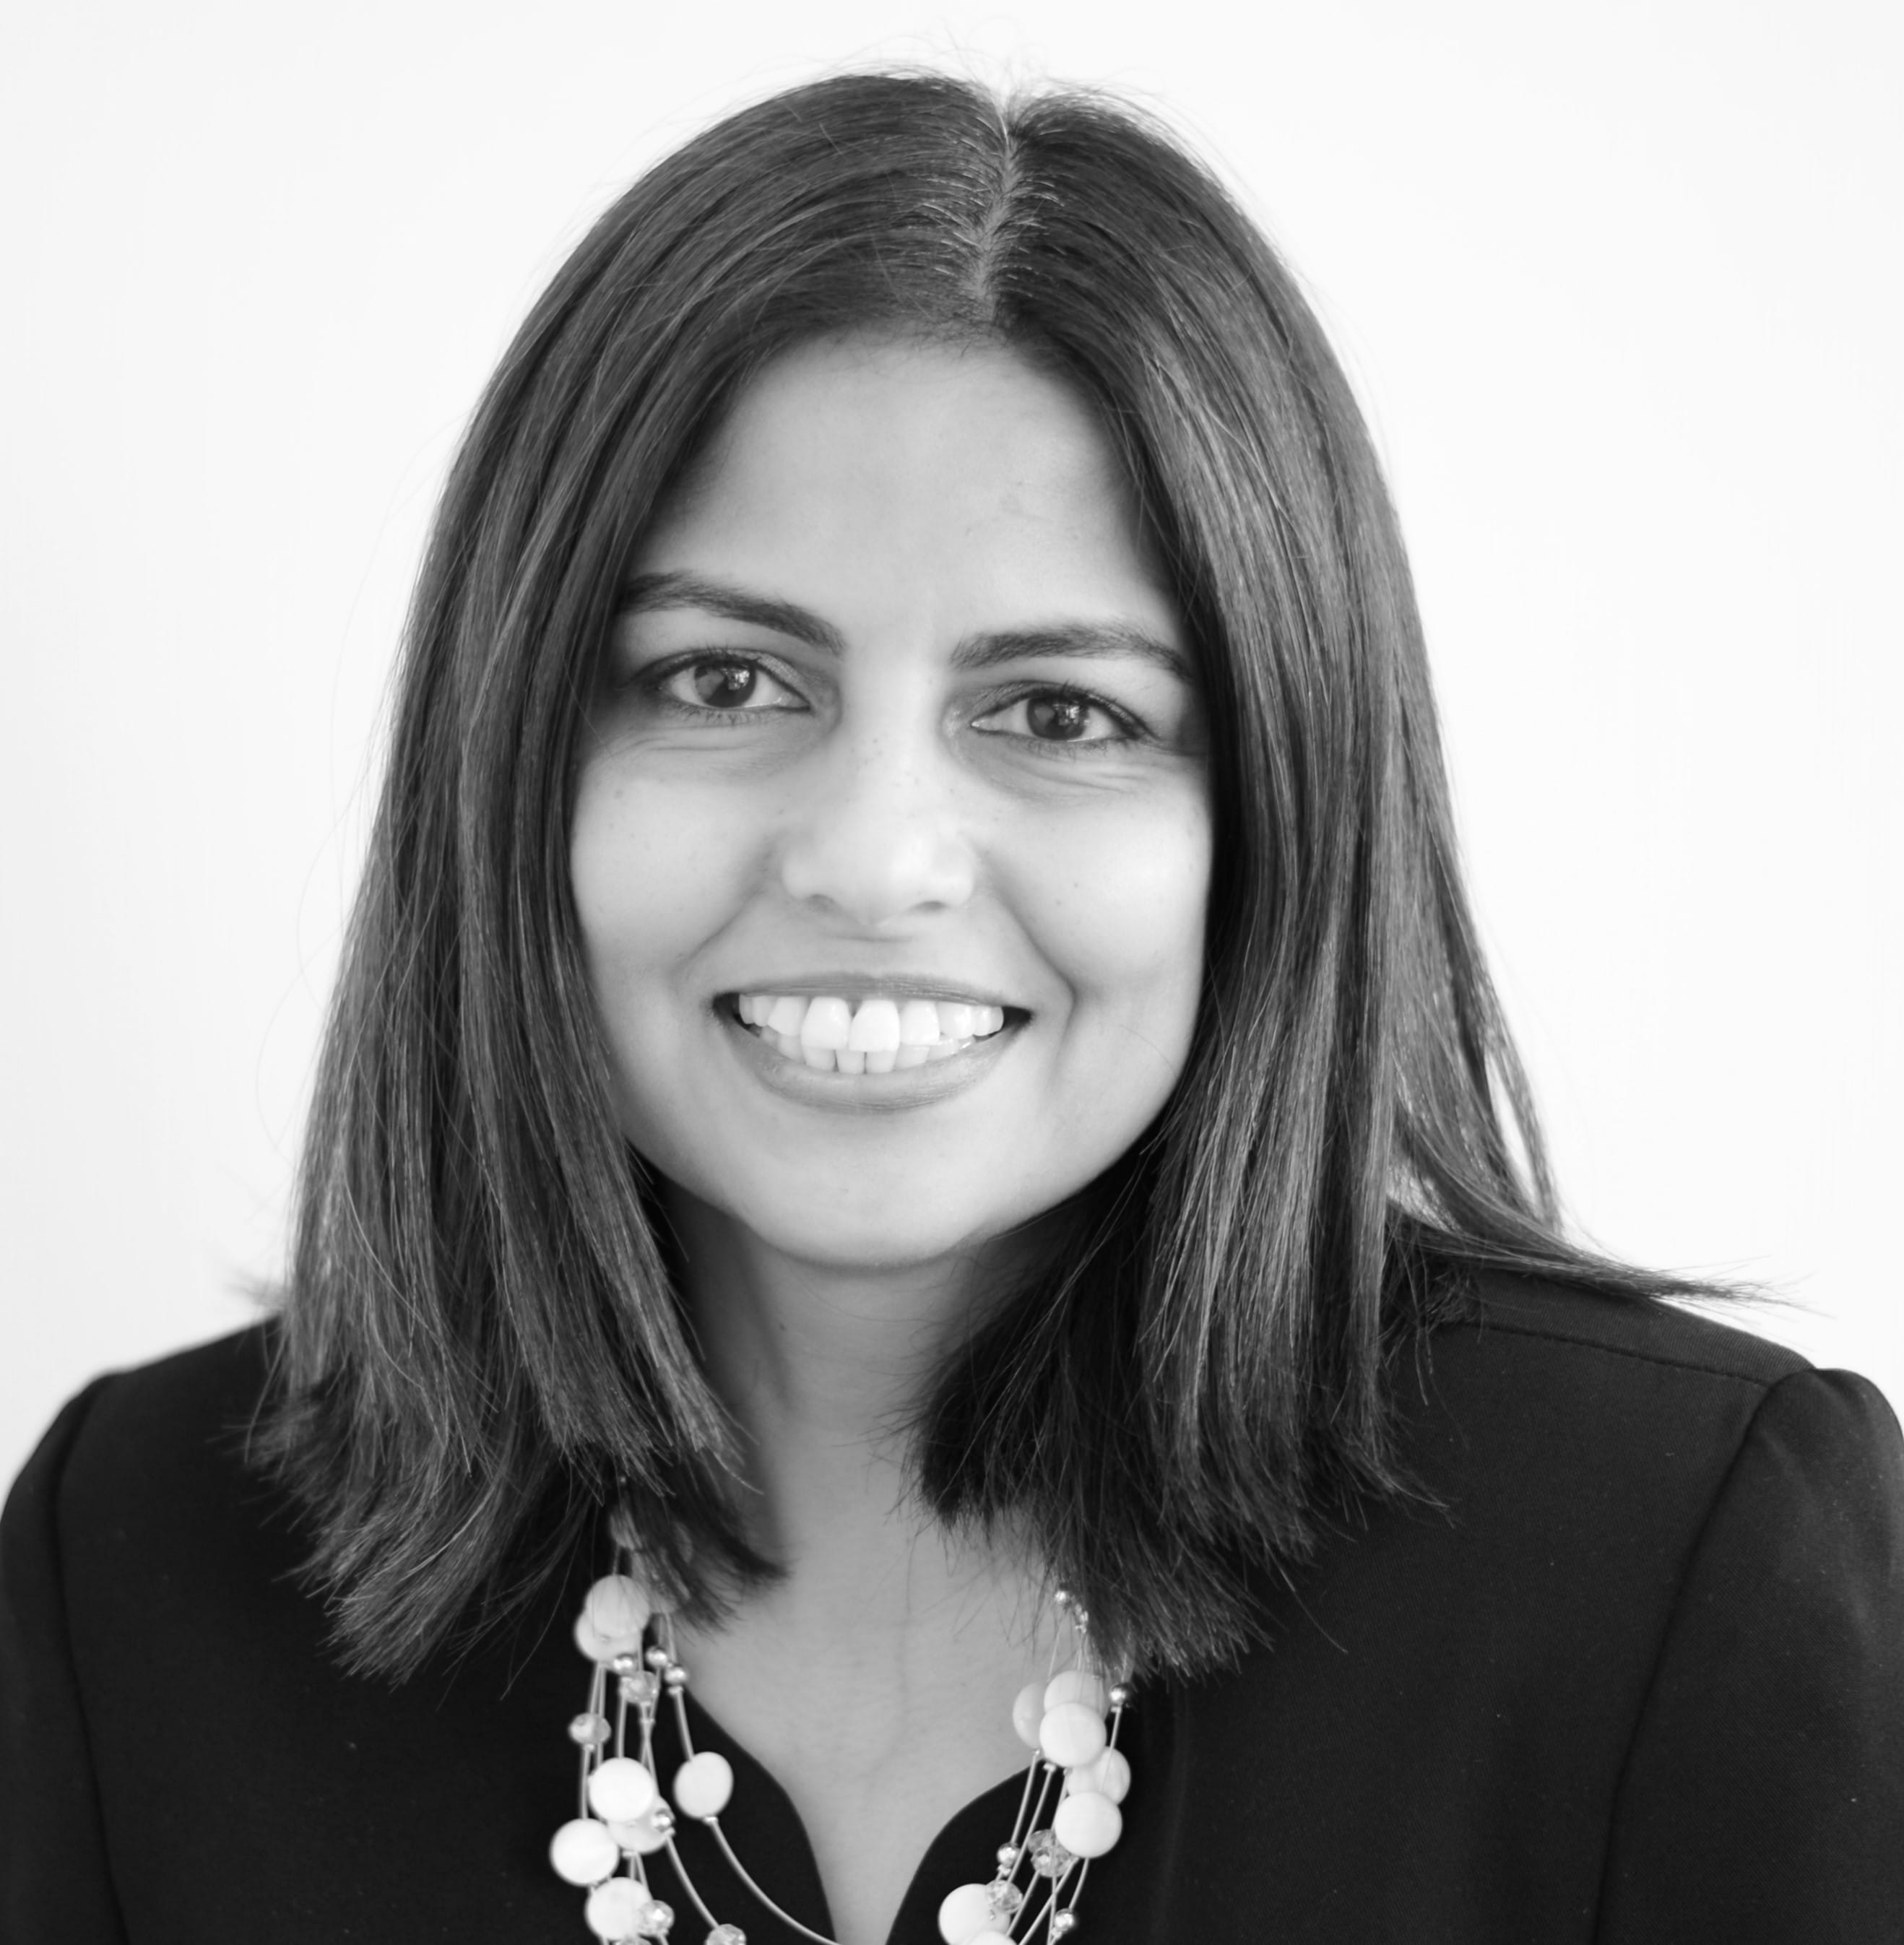 MGI World Audrey Danasamy MGI Asia Area Coordinator, black and white profile photo